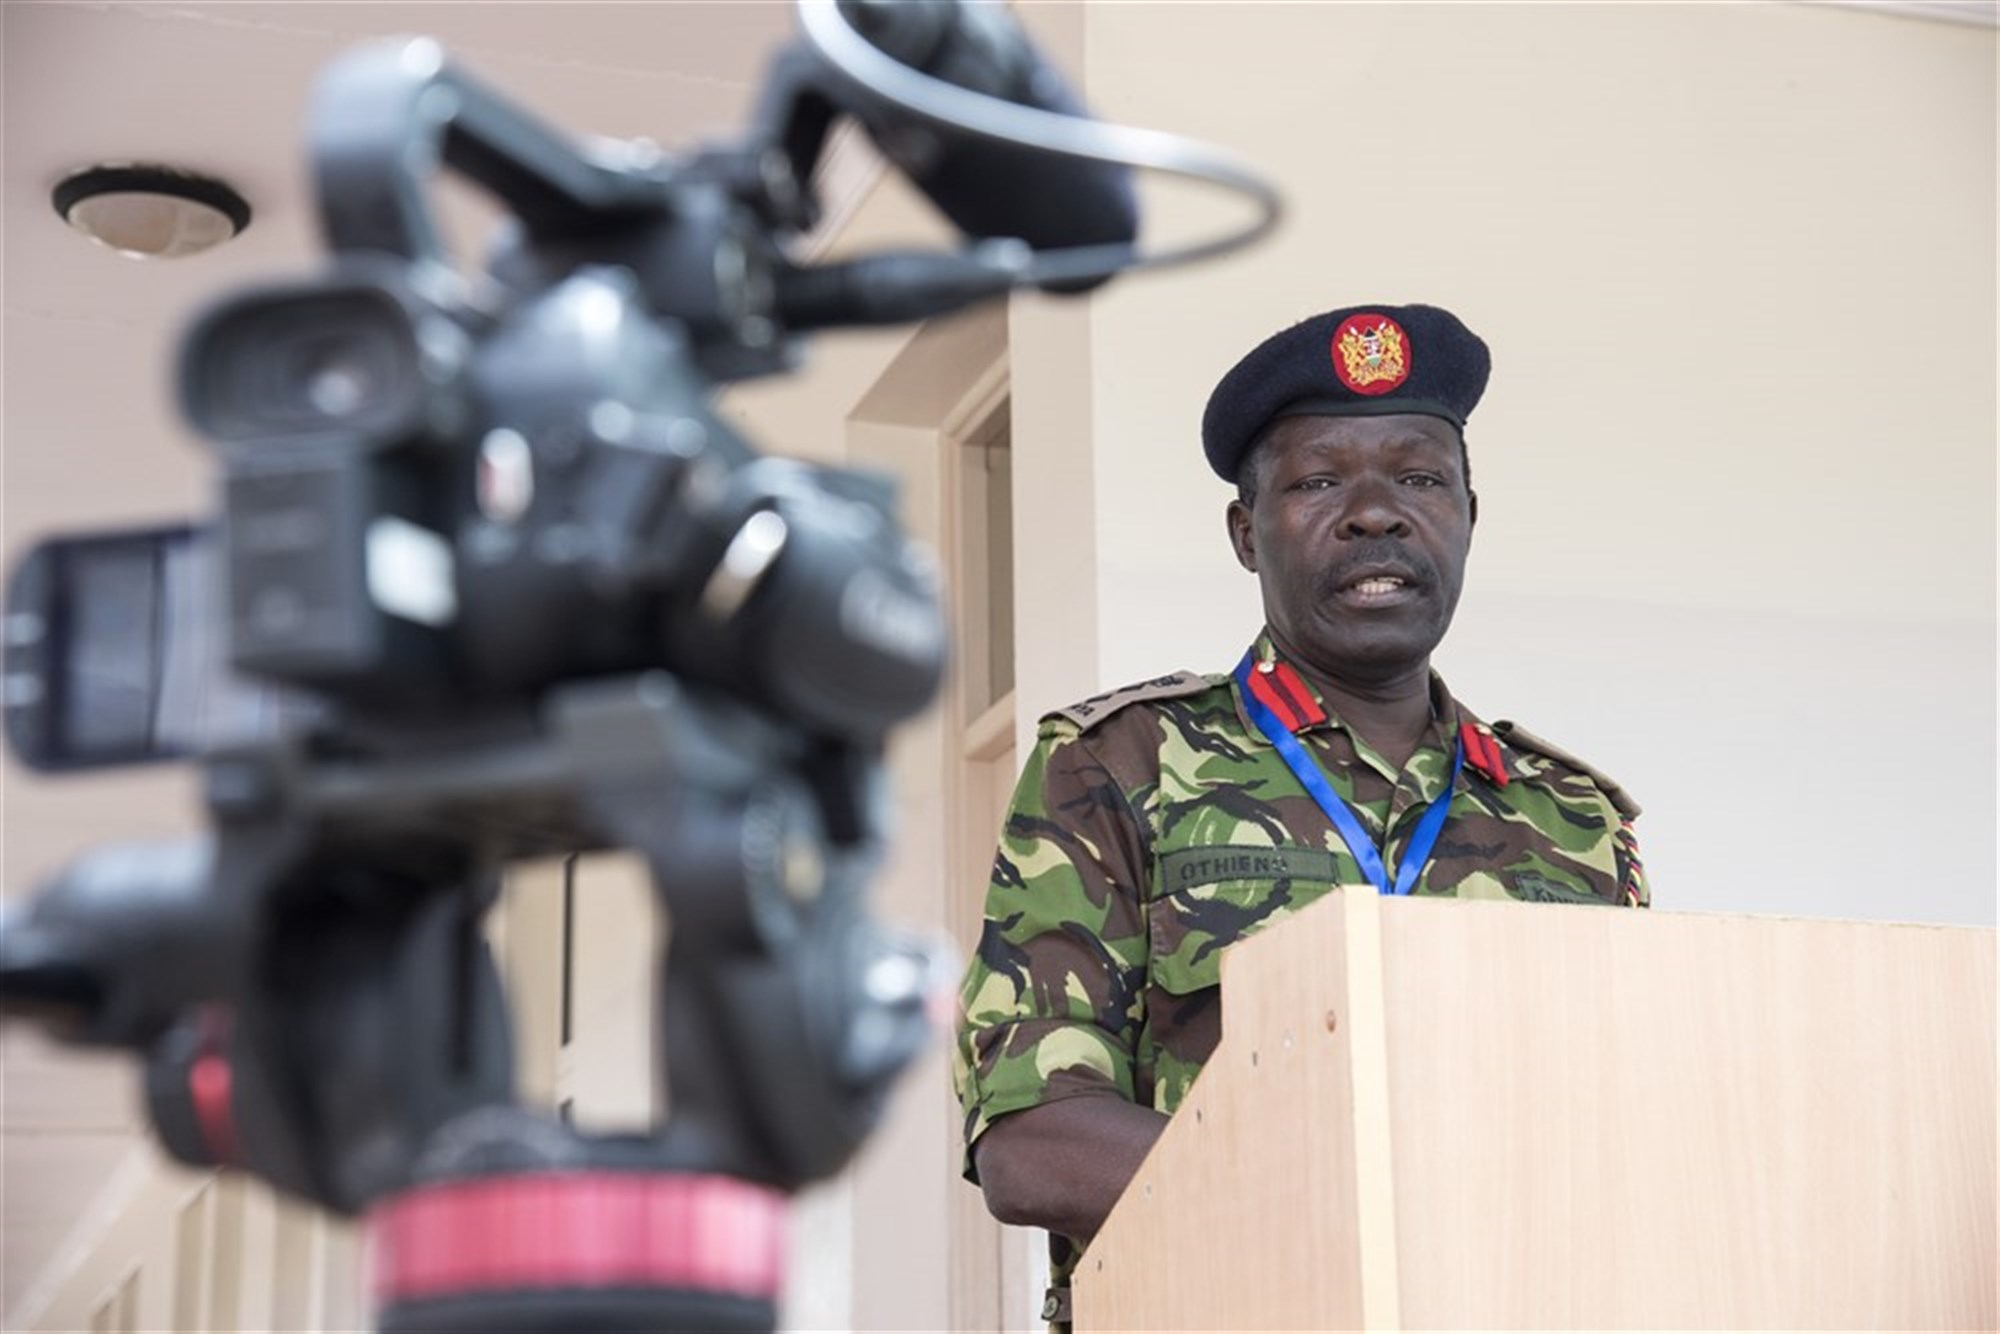 Kenyan Defense Force Col. Shadrack Othieno, Africa Contingency Operations Training & Assistance (ACOTA) African Union Mission in Somalia (AMISOM) Force Headquarters training course attendee, briefs the media during a mock press conference at the International Peace Support Training Center in Nairobi, Kenya, Aug. 25, 2015. The course was designed to prepare staff officers from AMISOM contributing countries for possible assignment to AMISOM Force Headquarters, the public affairs training is to prepare PA teams for the significant media presence in Somalia. (U.S. Air Force photo by Staff Sgt. Nathan Maysonet/released)